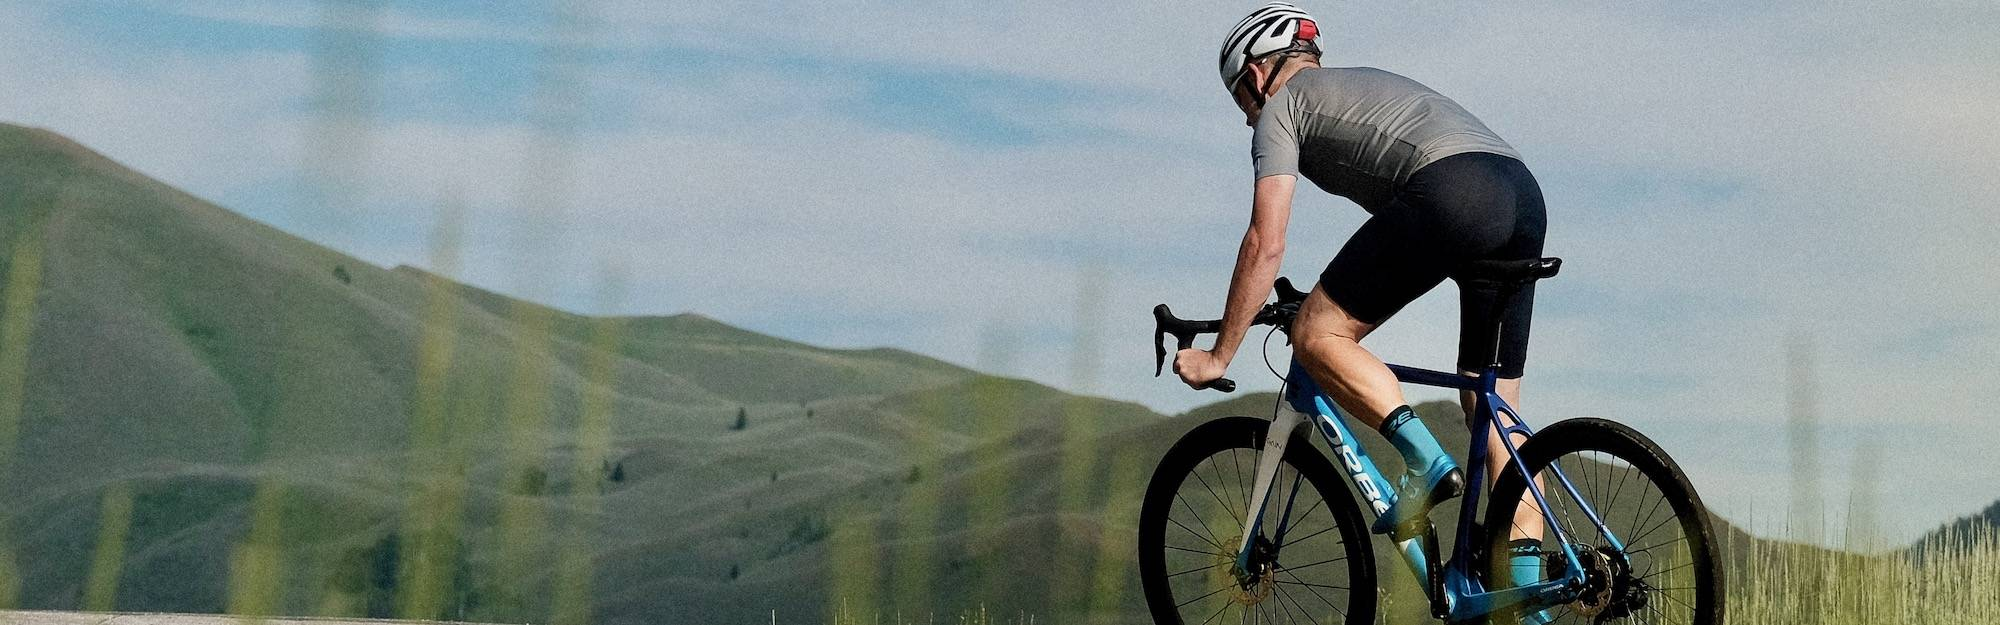 Best road bikes for sale available at Mike's Bikes!